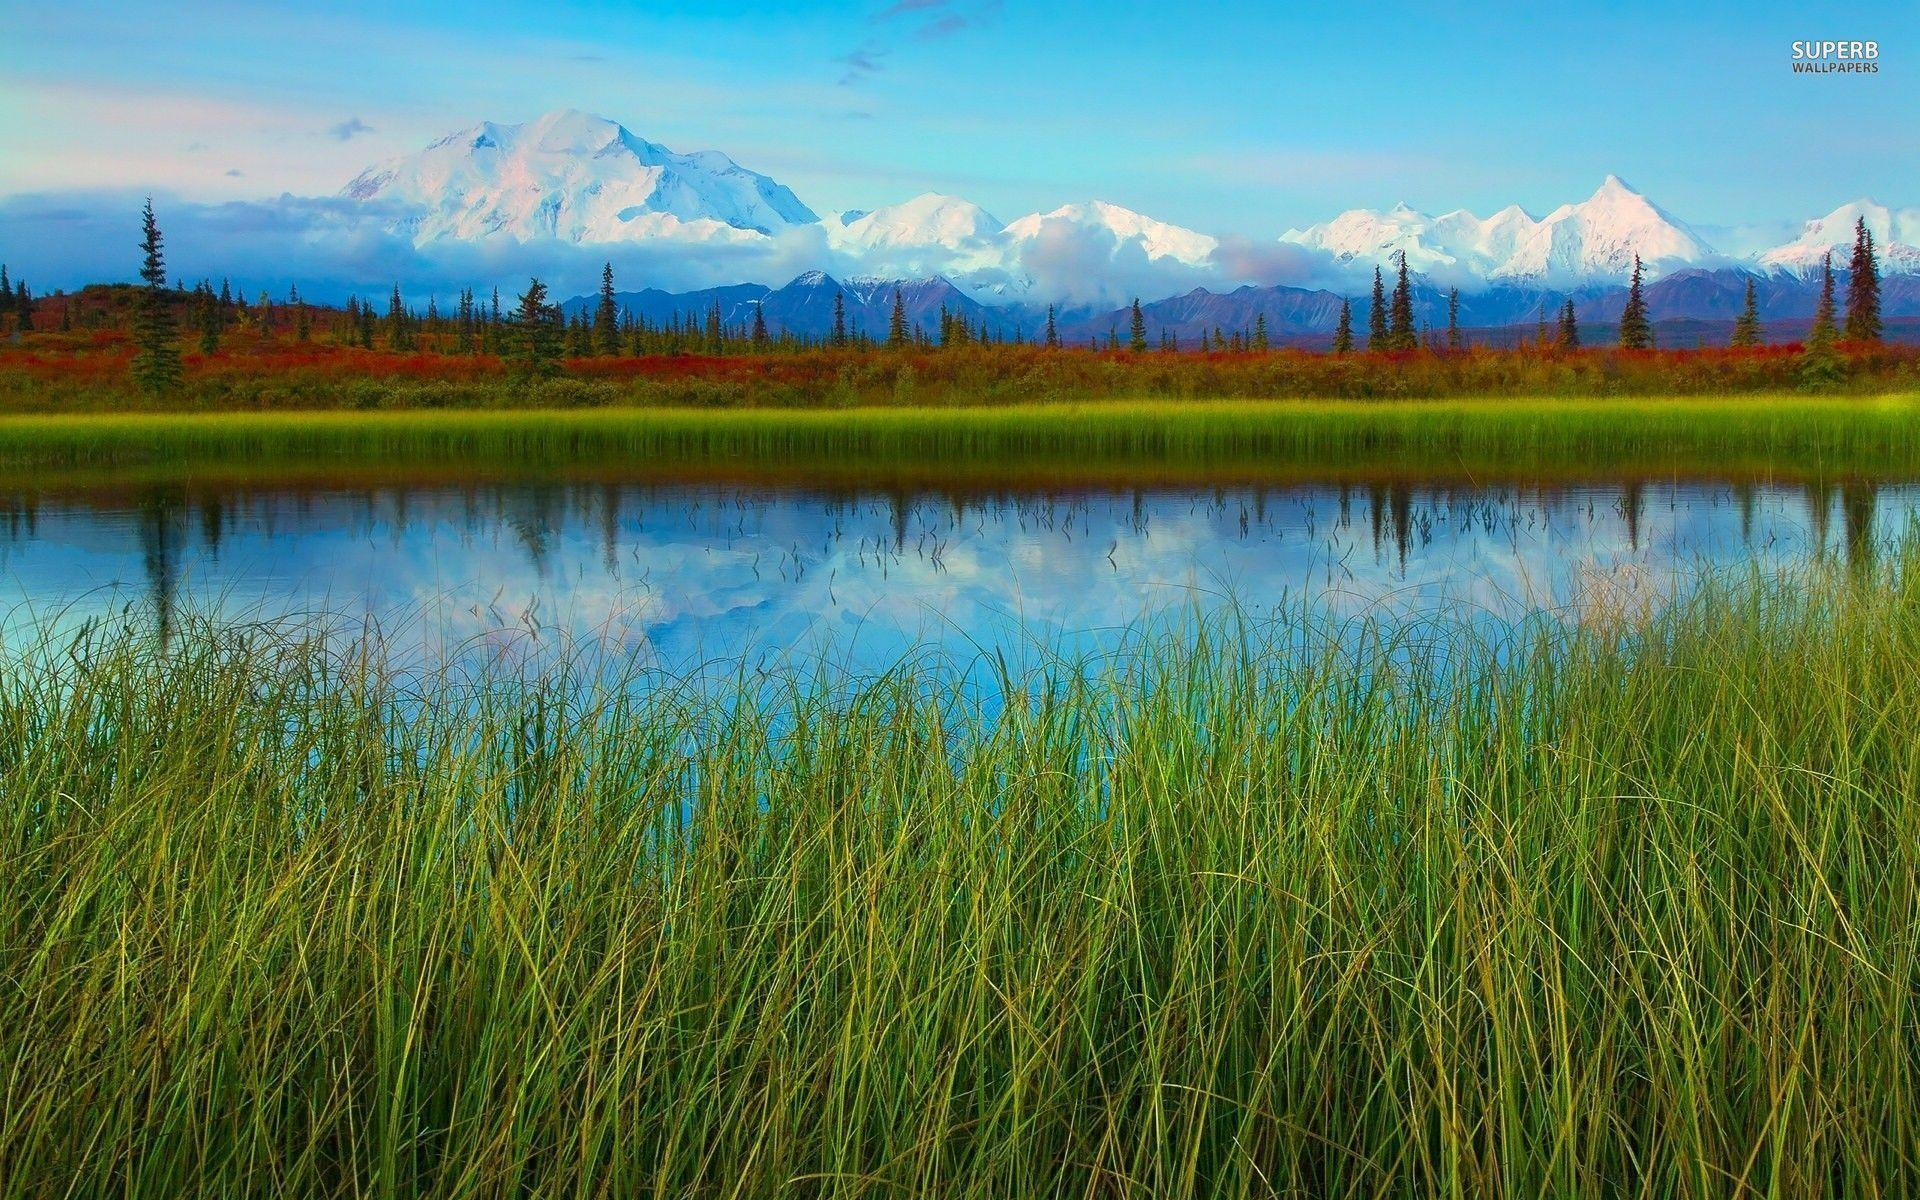 Alaska Wallpapers - Full HD wallpaper search - page 2